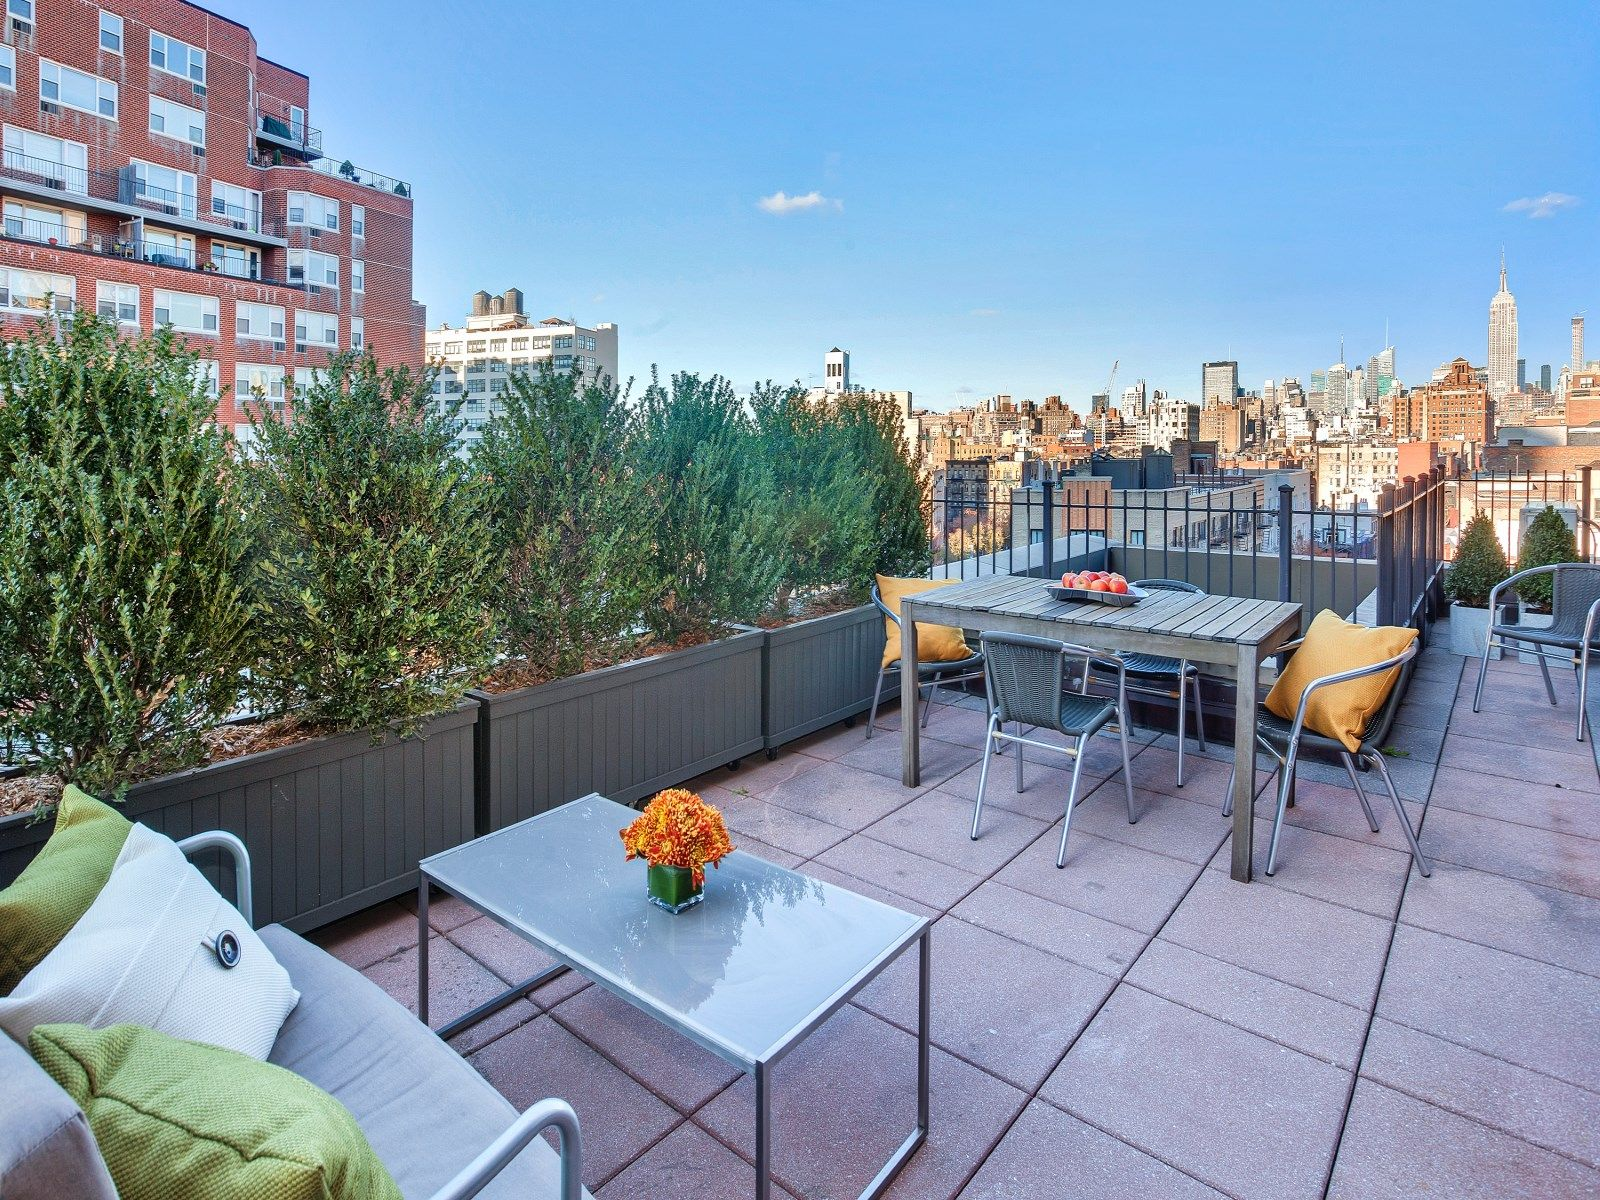 196 Sixth Avenue 7a New York Ny Cooperative New York City Real Estate Extraordinary New York Manhattan Real Estate Residential Real Estate Home